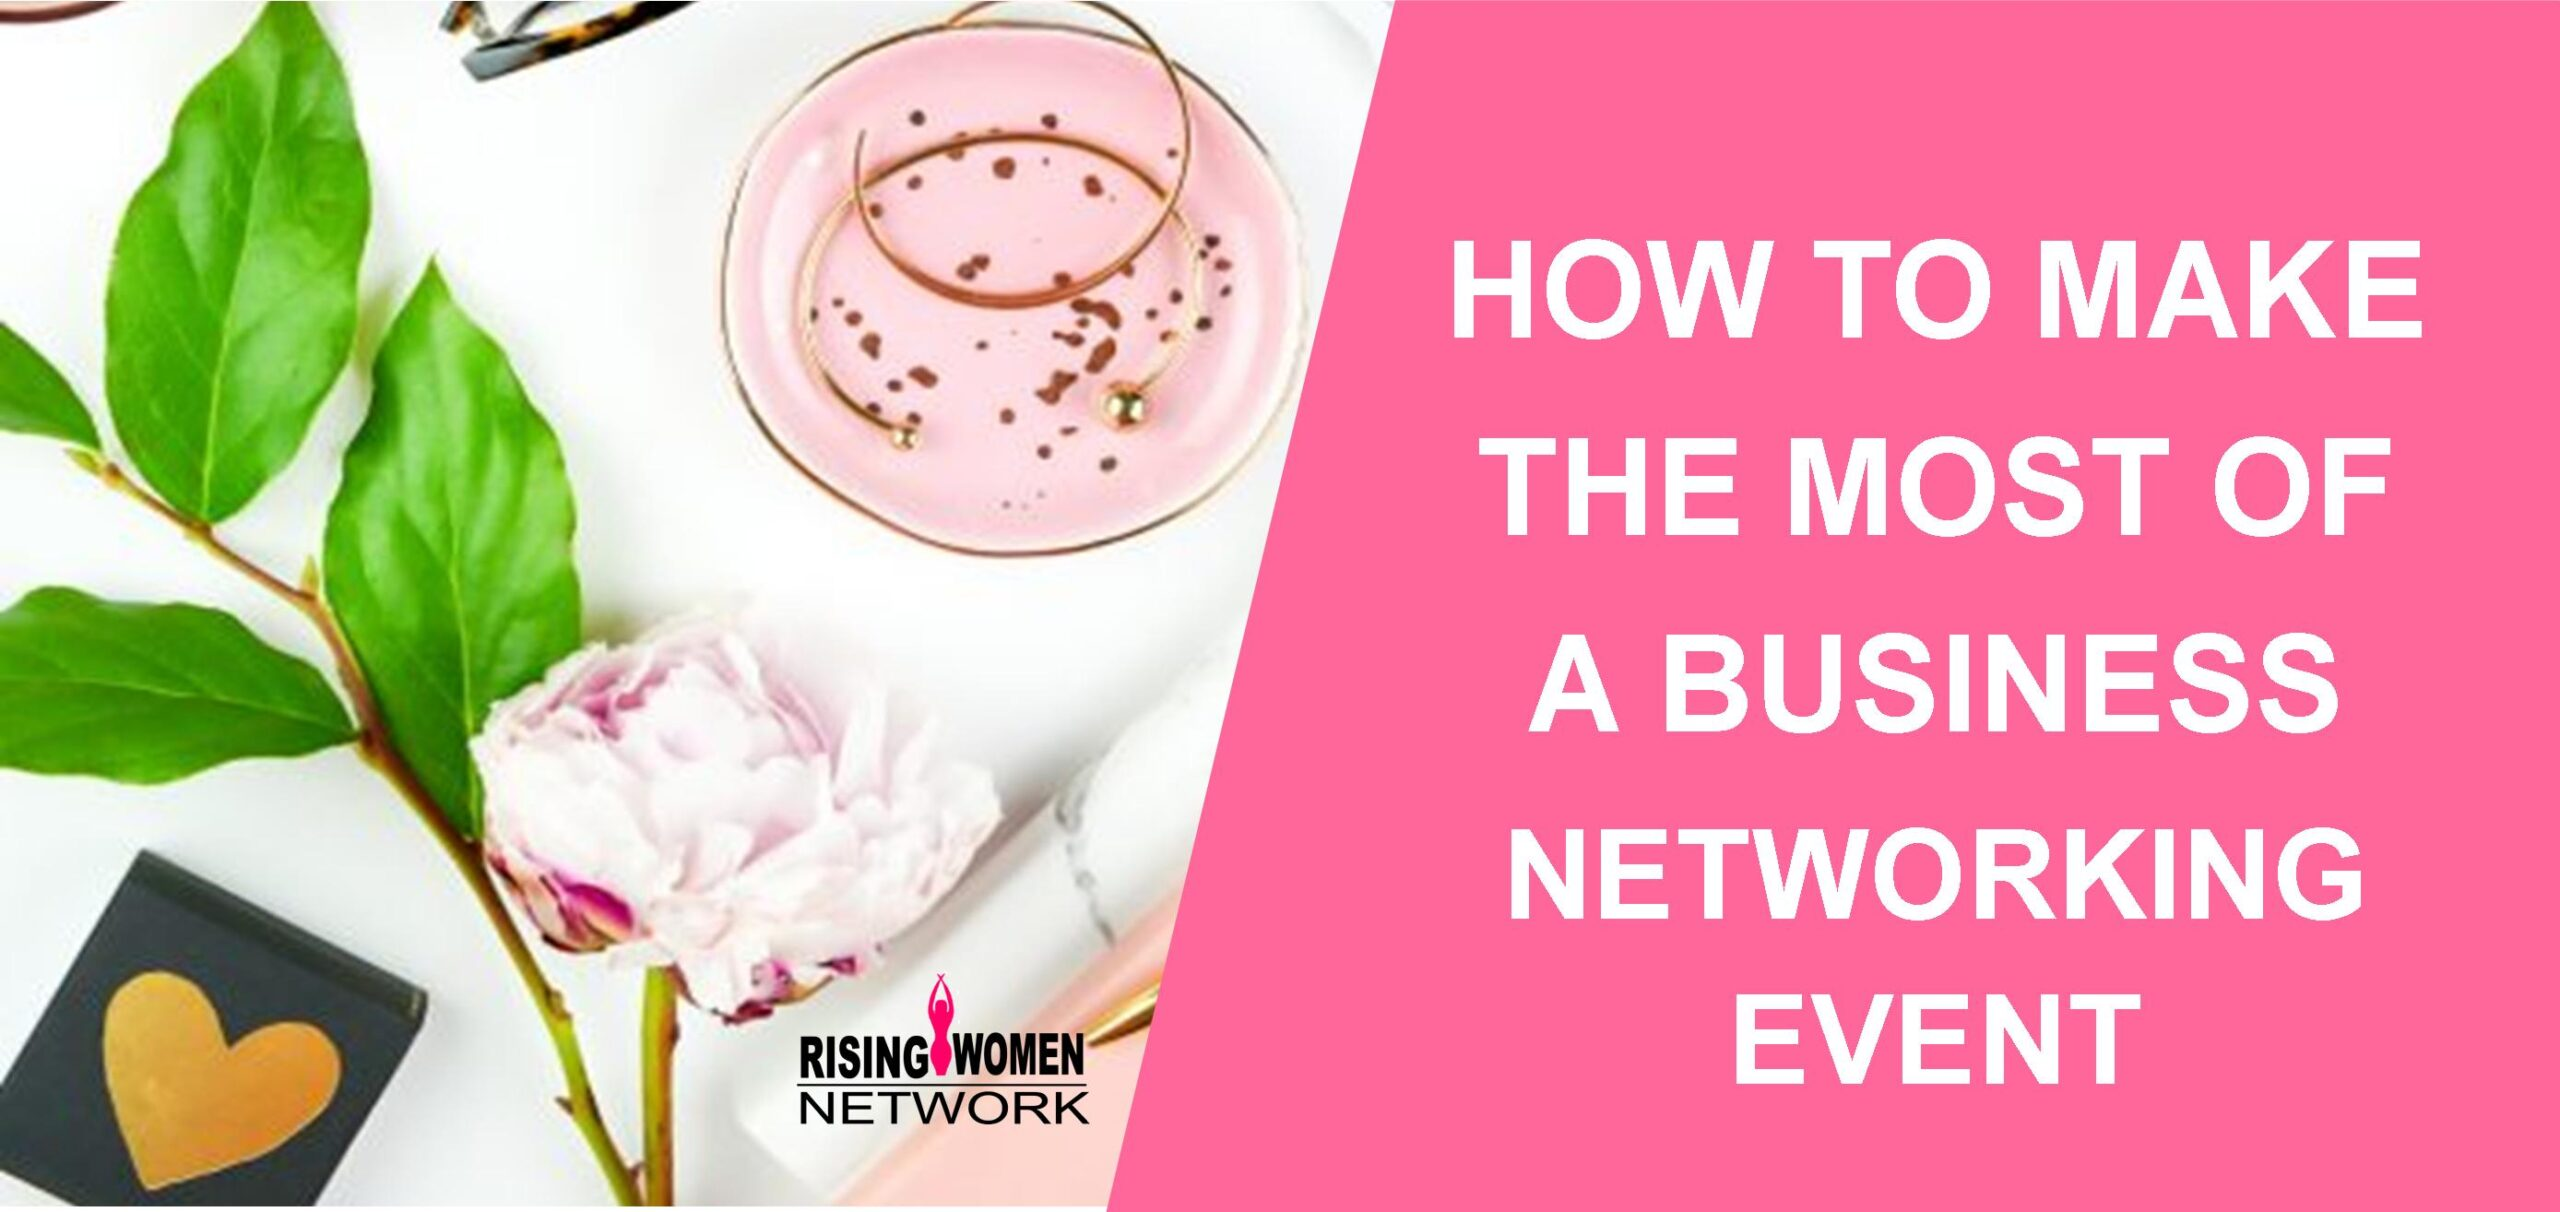 Business networking events can help you grow your business and allow you to do hands-on marketing research. Learning to mingle and follow-up with business networking contacts is crucial to your small business success. The following techniques will assist you in connecting effectively with others.